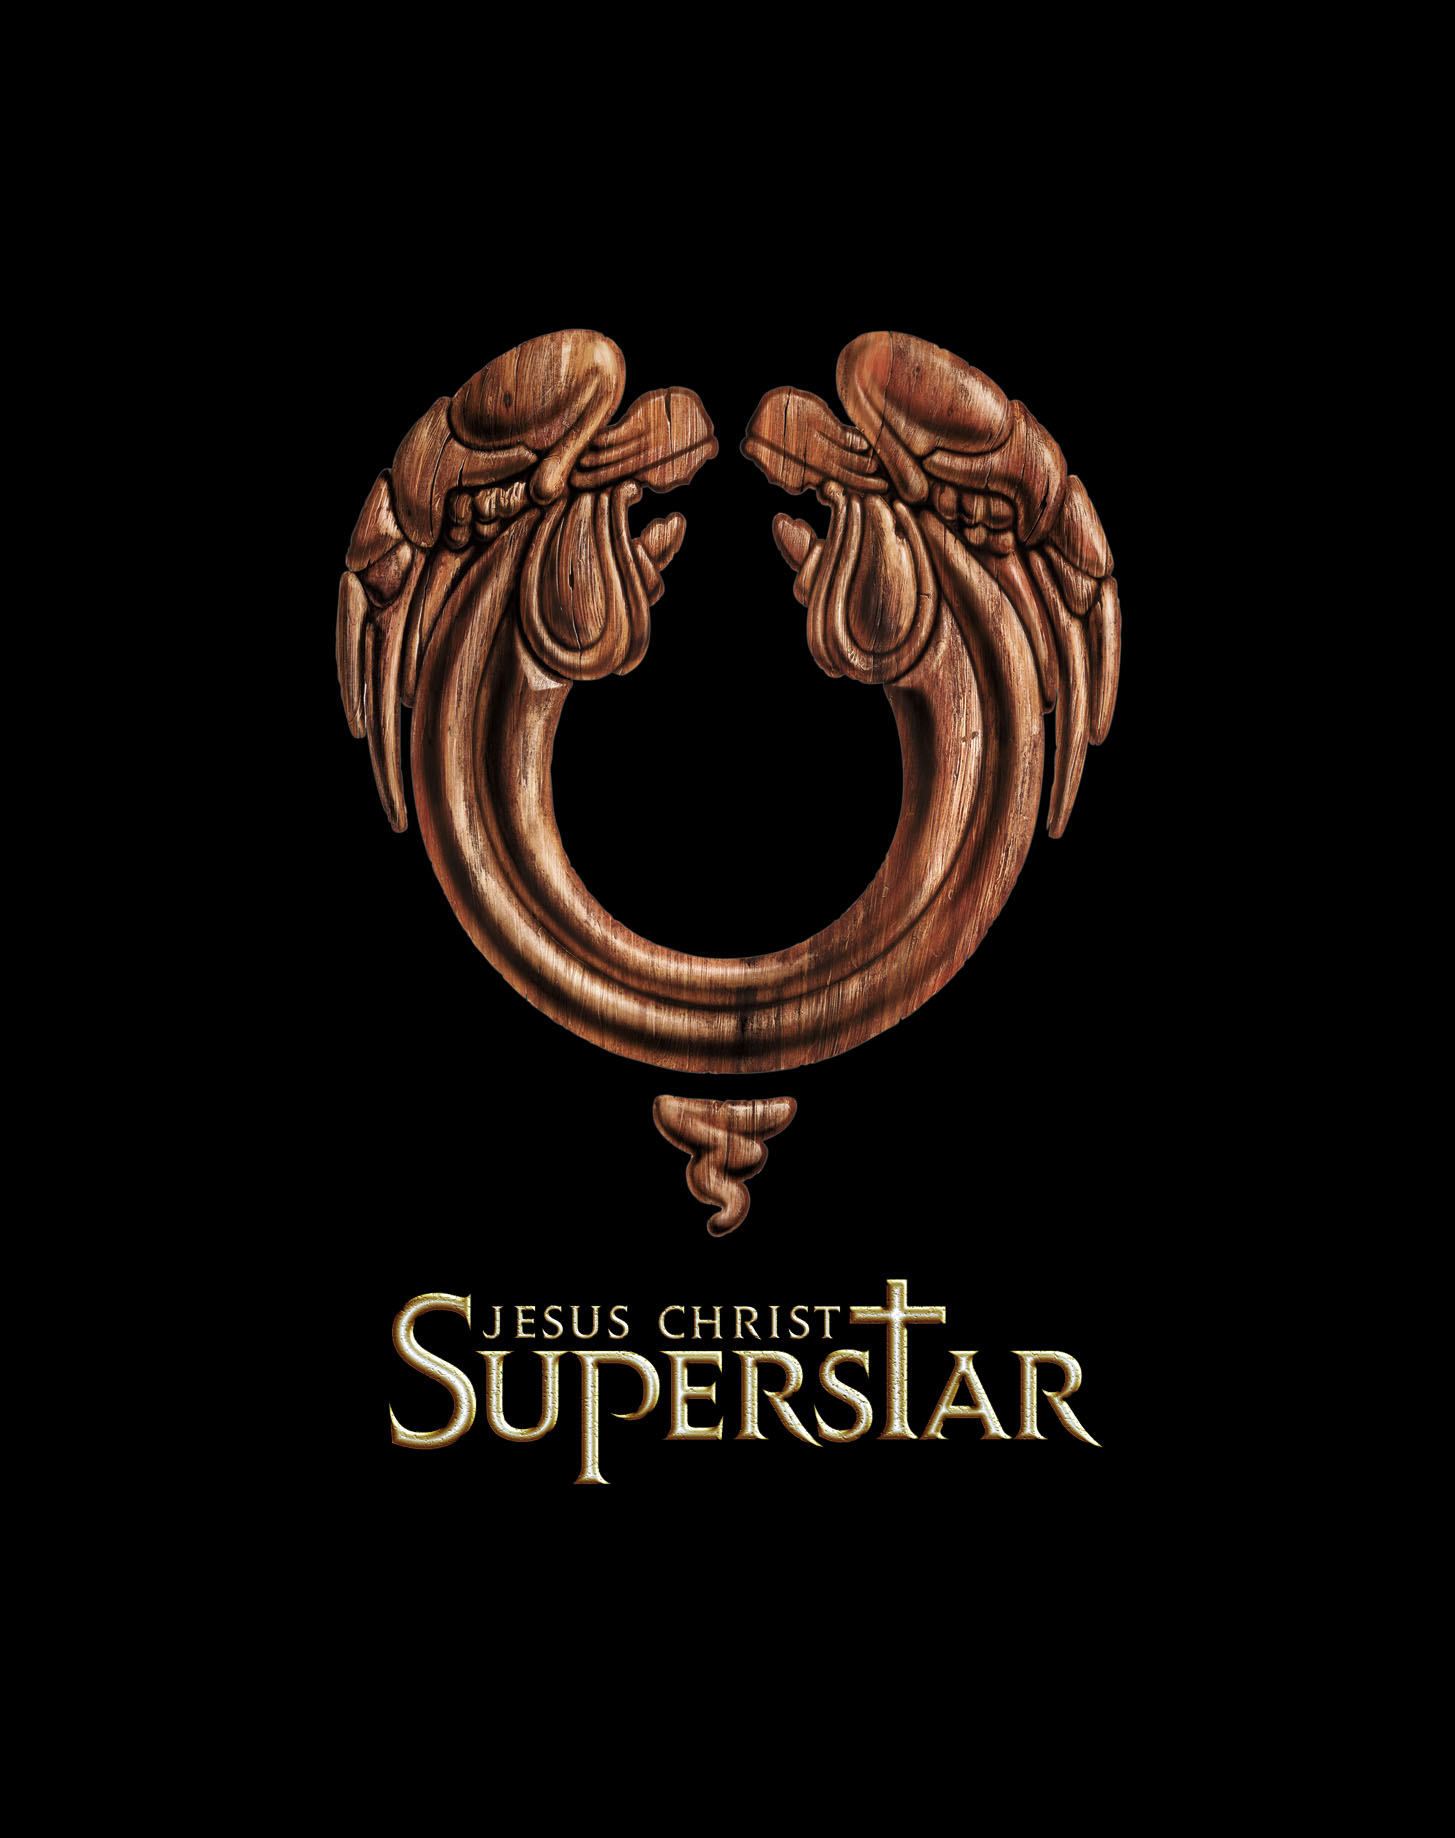 1302276614Jesus-Christ-Superstar_Logo_Color.jpg